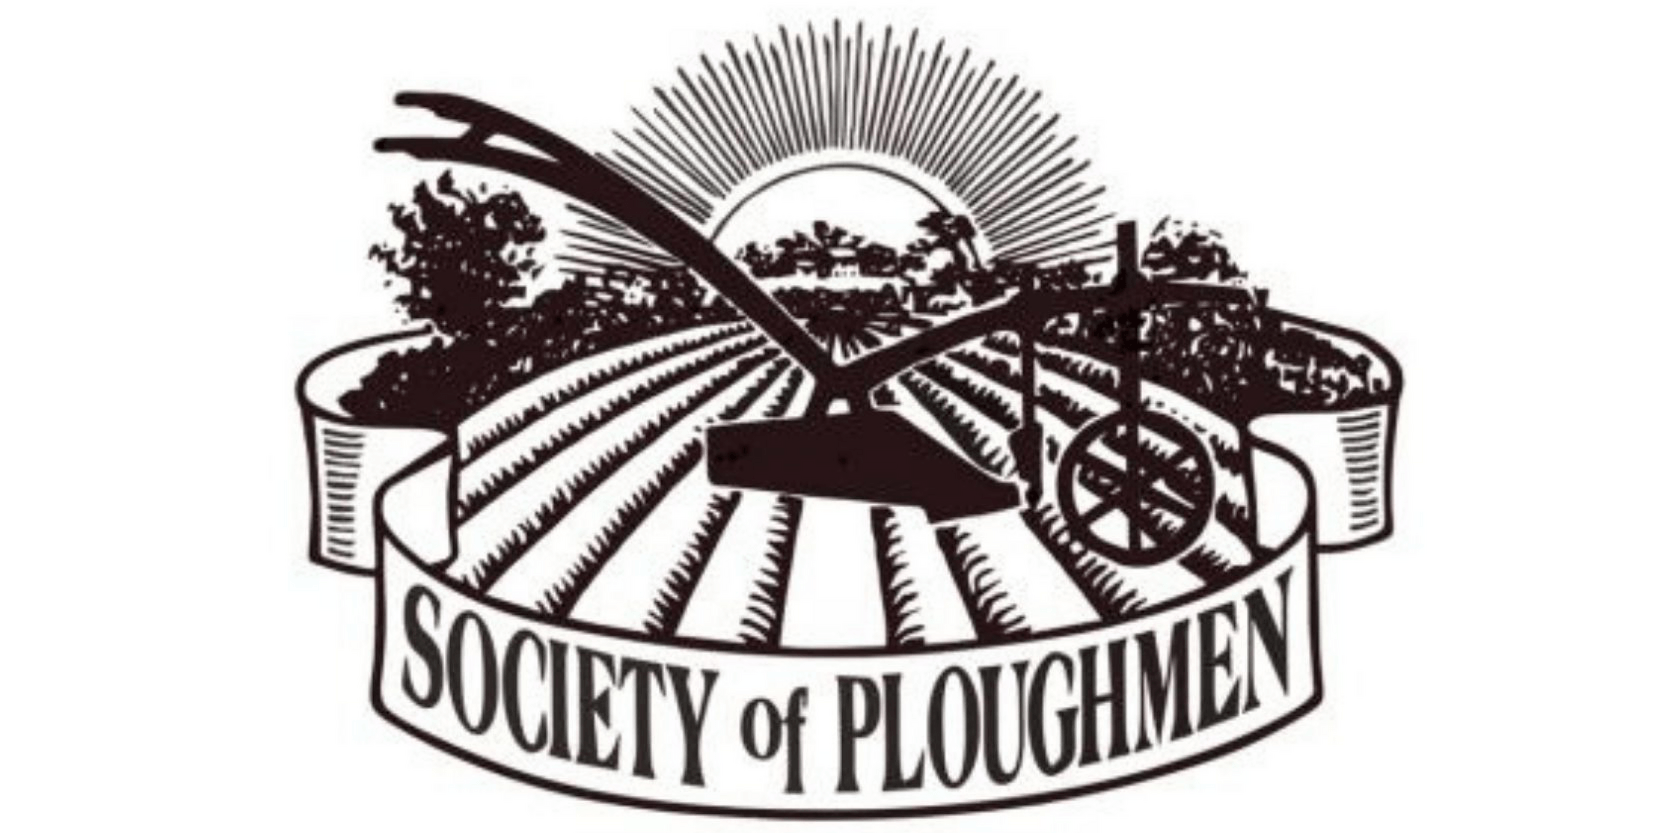 SOCIETY OF PLOUGHMEN